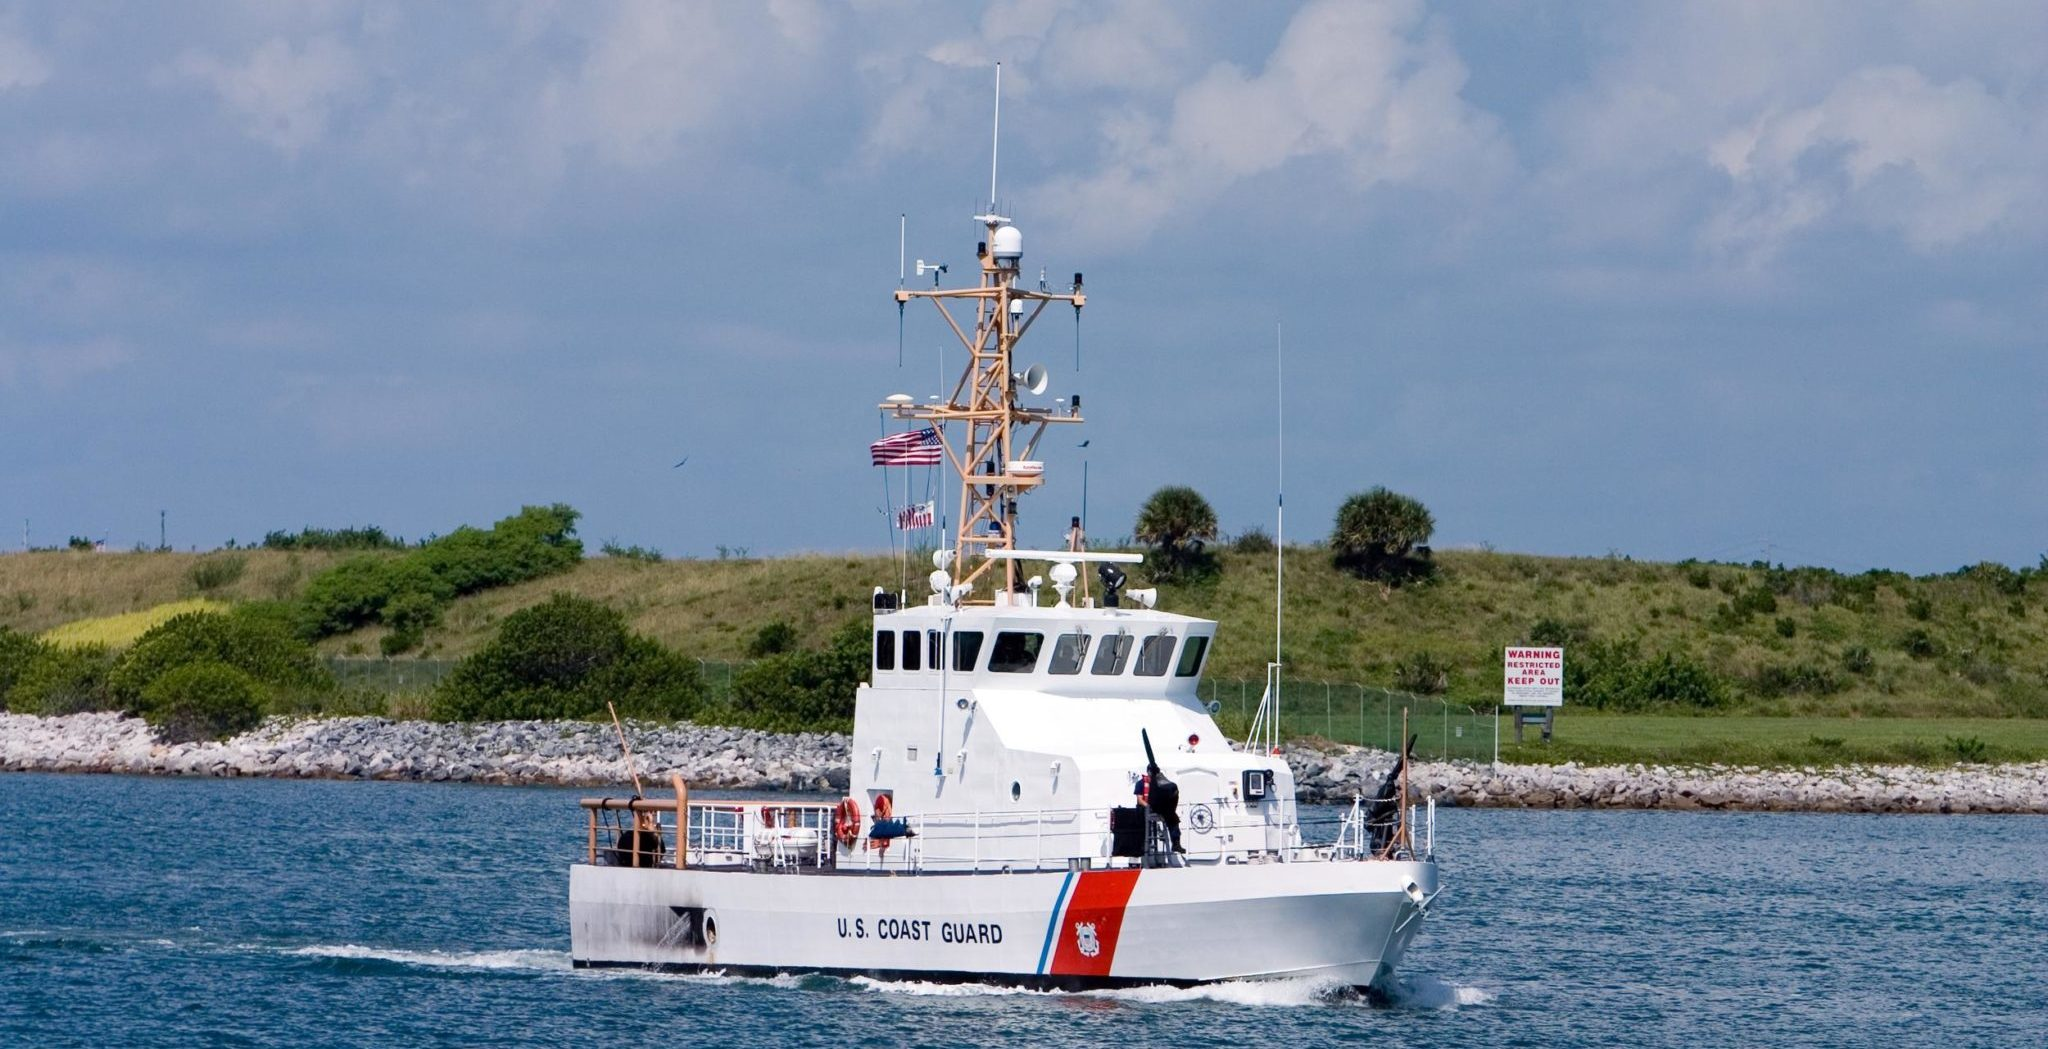 Coast Guard to go without pay if shutdown continues through weekend